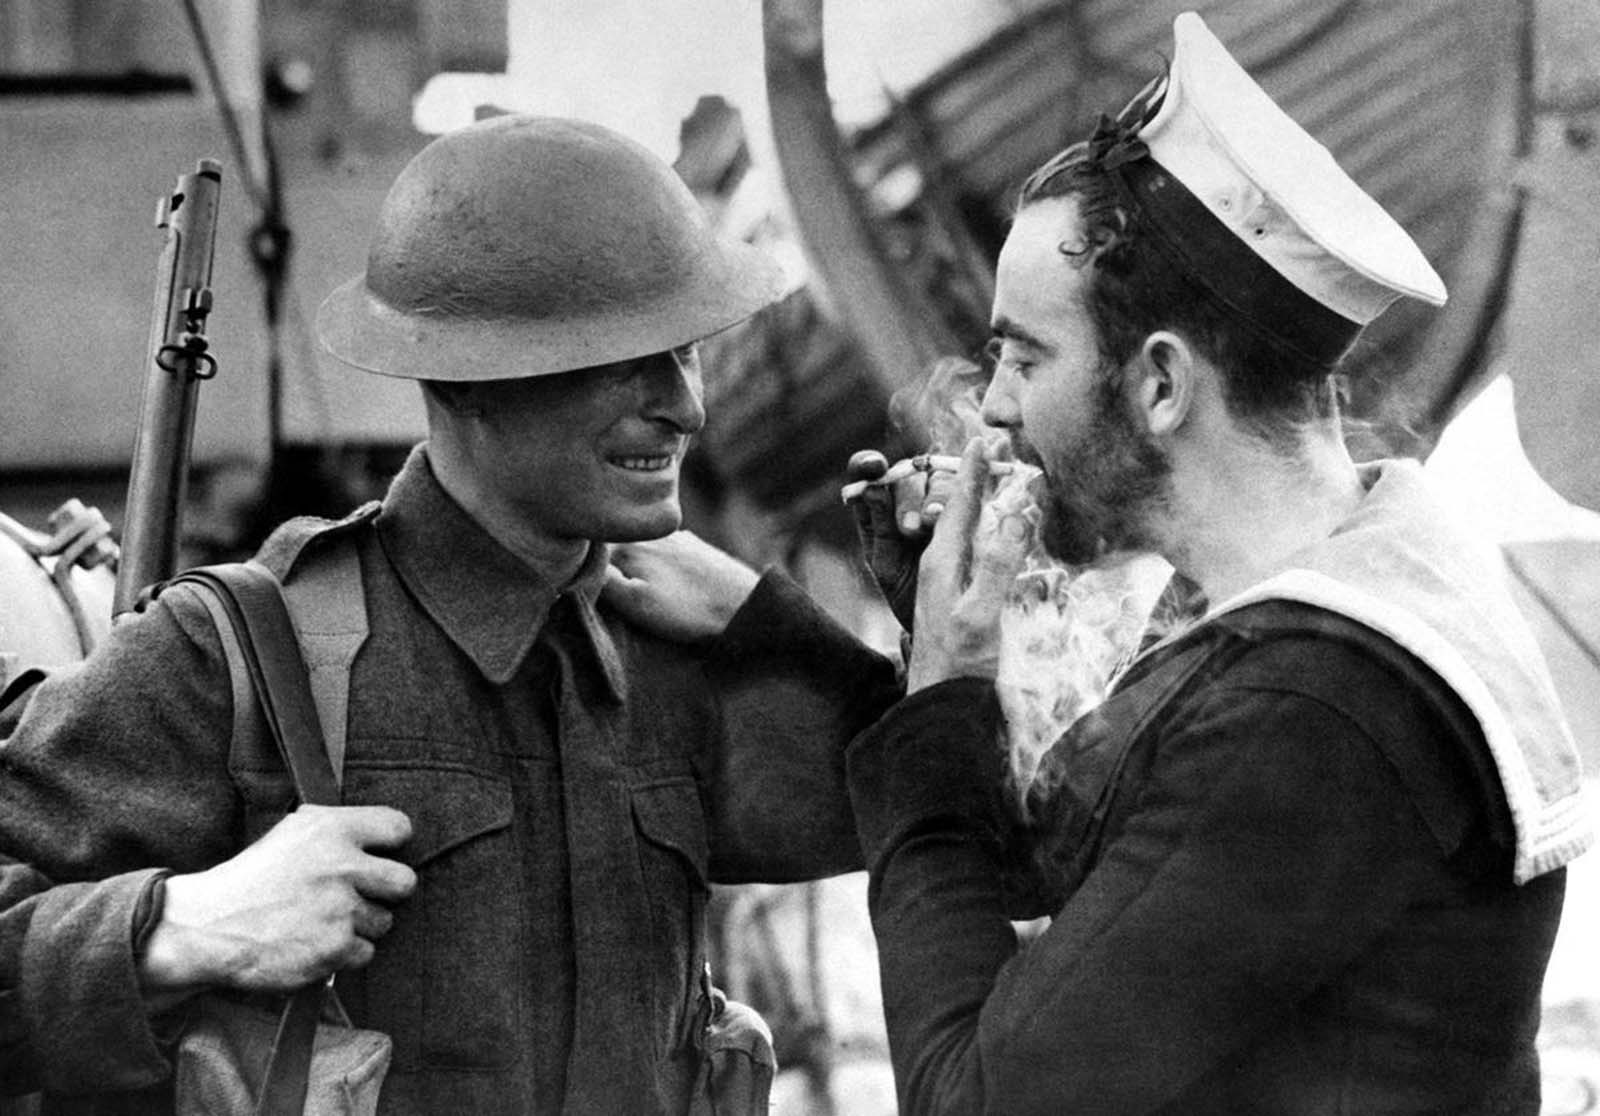 Two examples of Britain's war forces, a soldier in battle dress and a bearded Canadian sailor share a light at an English port, on January 14, 1941.